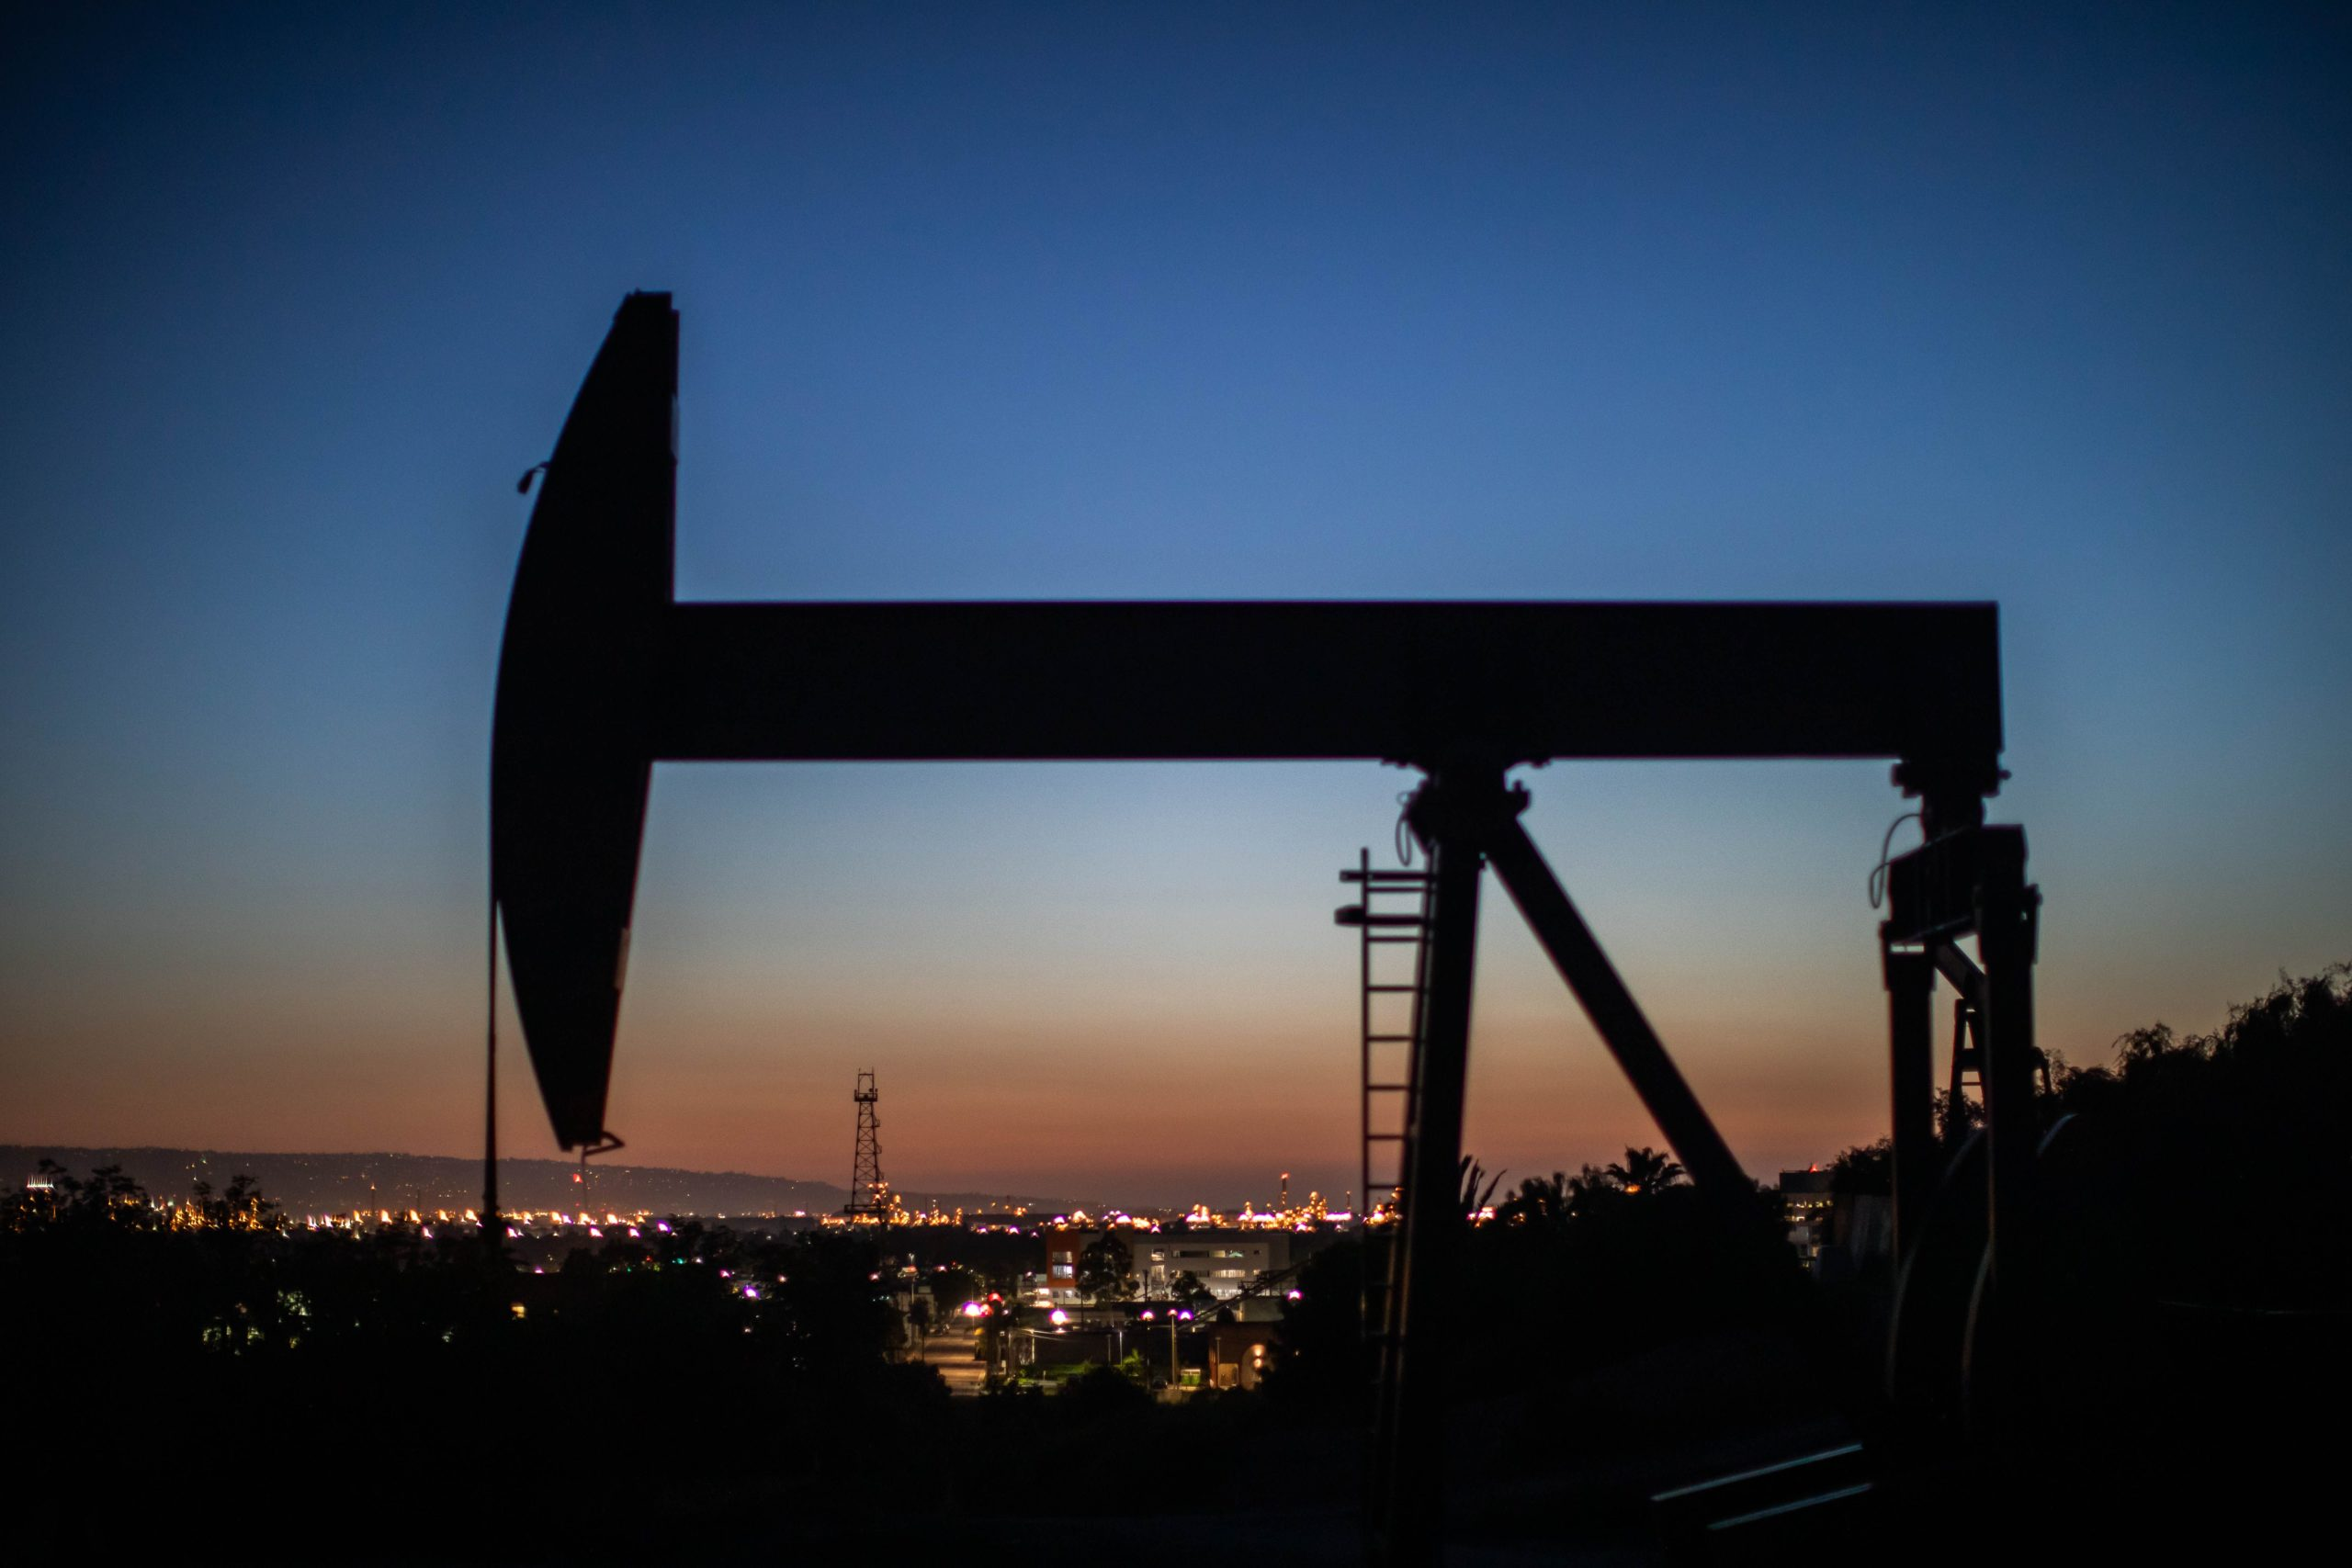 """An oil pumpjack operates at dusk Willow Springs Park in Long Beach, California on April 21, 2020, a day after oil prices dropped to below zero as the oil industry suffers steep falls in benchmark crudes due to the ongoing global coronavirus pandemic. - President Donald Trump on April 21 ordered his administration to come up with a plan to aid US oil companies struggling with a massive supply glut and record-low crude prices. """"We will never let the great US Oil & Gas Industry down,"""" Trump tweeted. (Photo by Apu GOMES / AFP) (Photo by APU GOMES/AFP via Getty Images)"""